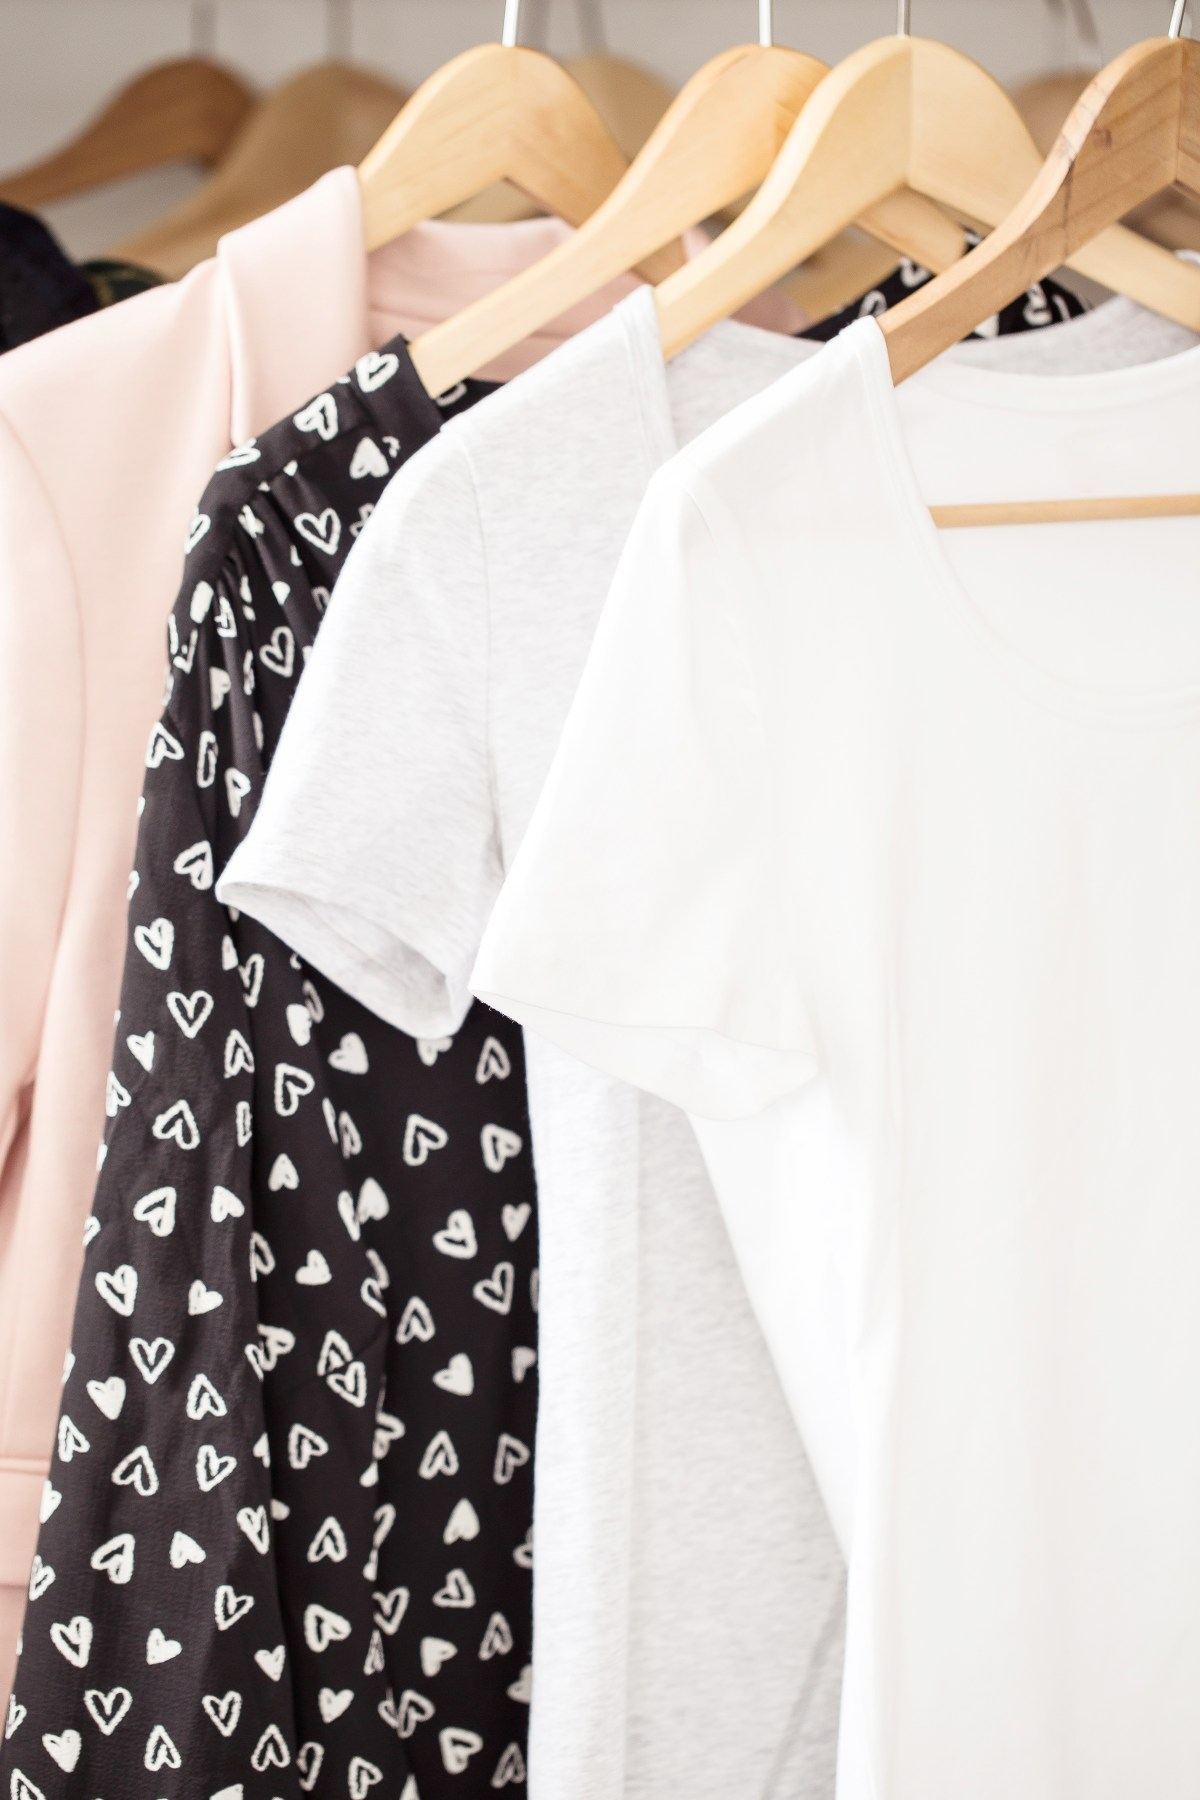 Really helpful #tips on how to do a closet clean out. This read gave me SO many organizing ideas to help declutter my wardrobe and bedroom. I'm so happy with how it looks now! #home #house #closet #bedroom #organizing #organize #hacks